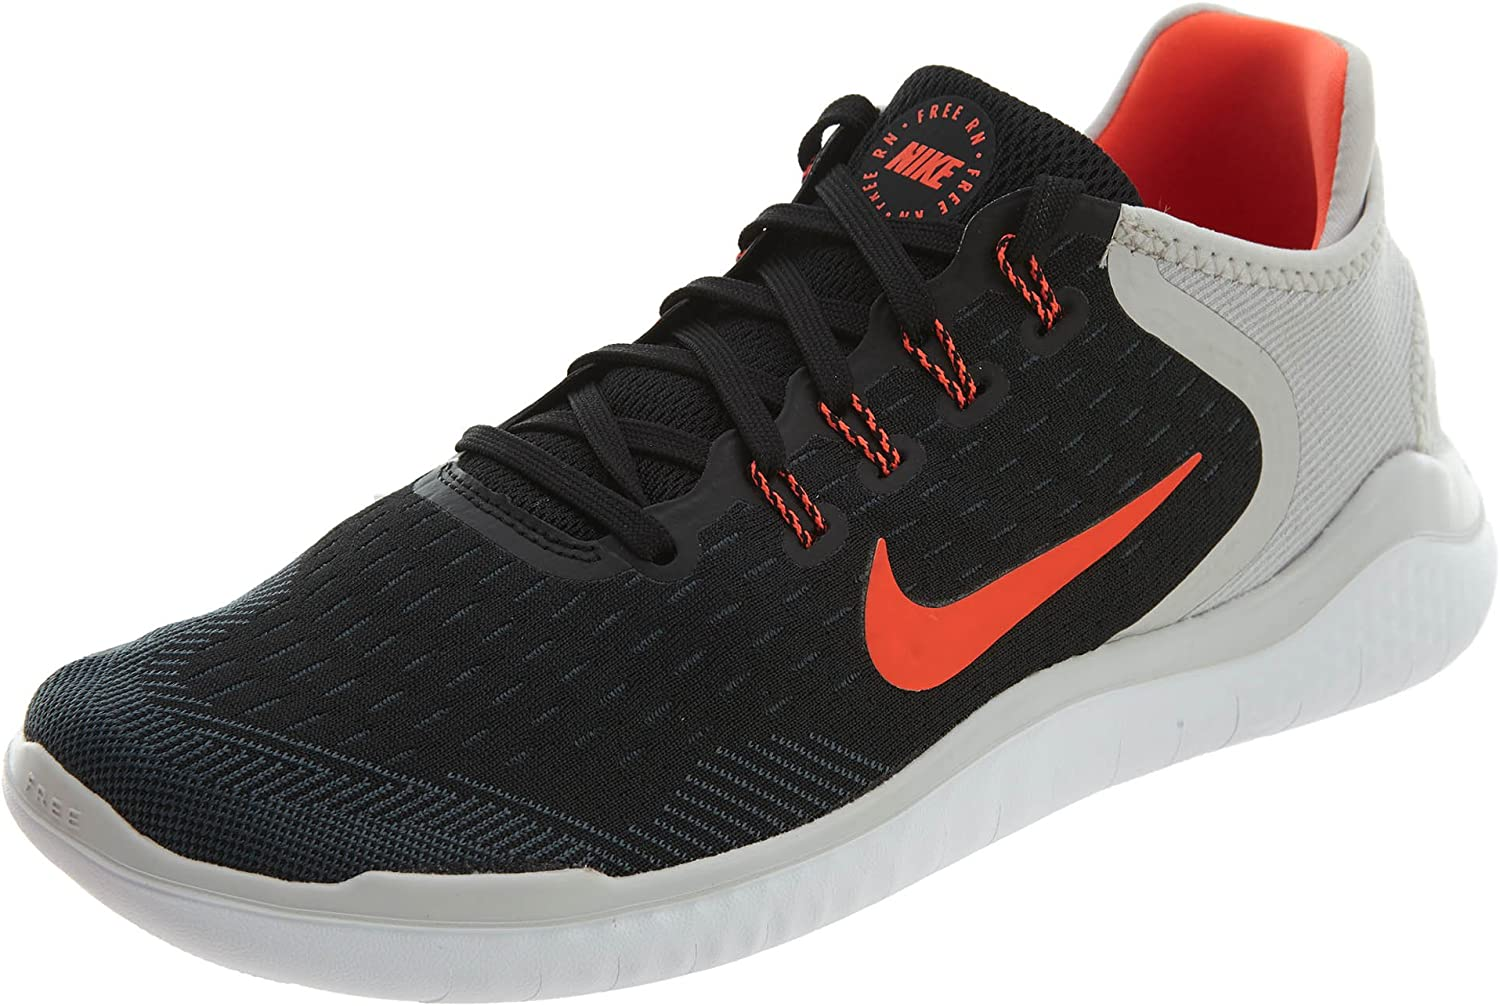 Nike Men s Free RN 2018 Black Total Crimson-Vast Grey-White Running Shoes 10 D M US